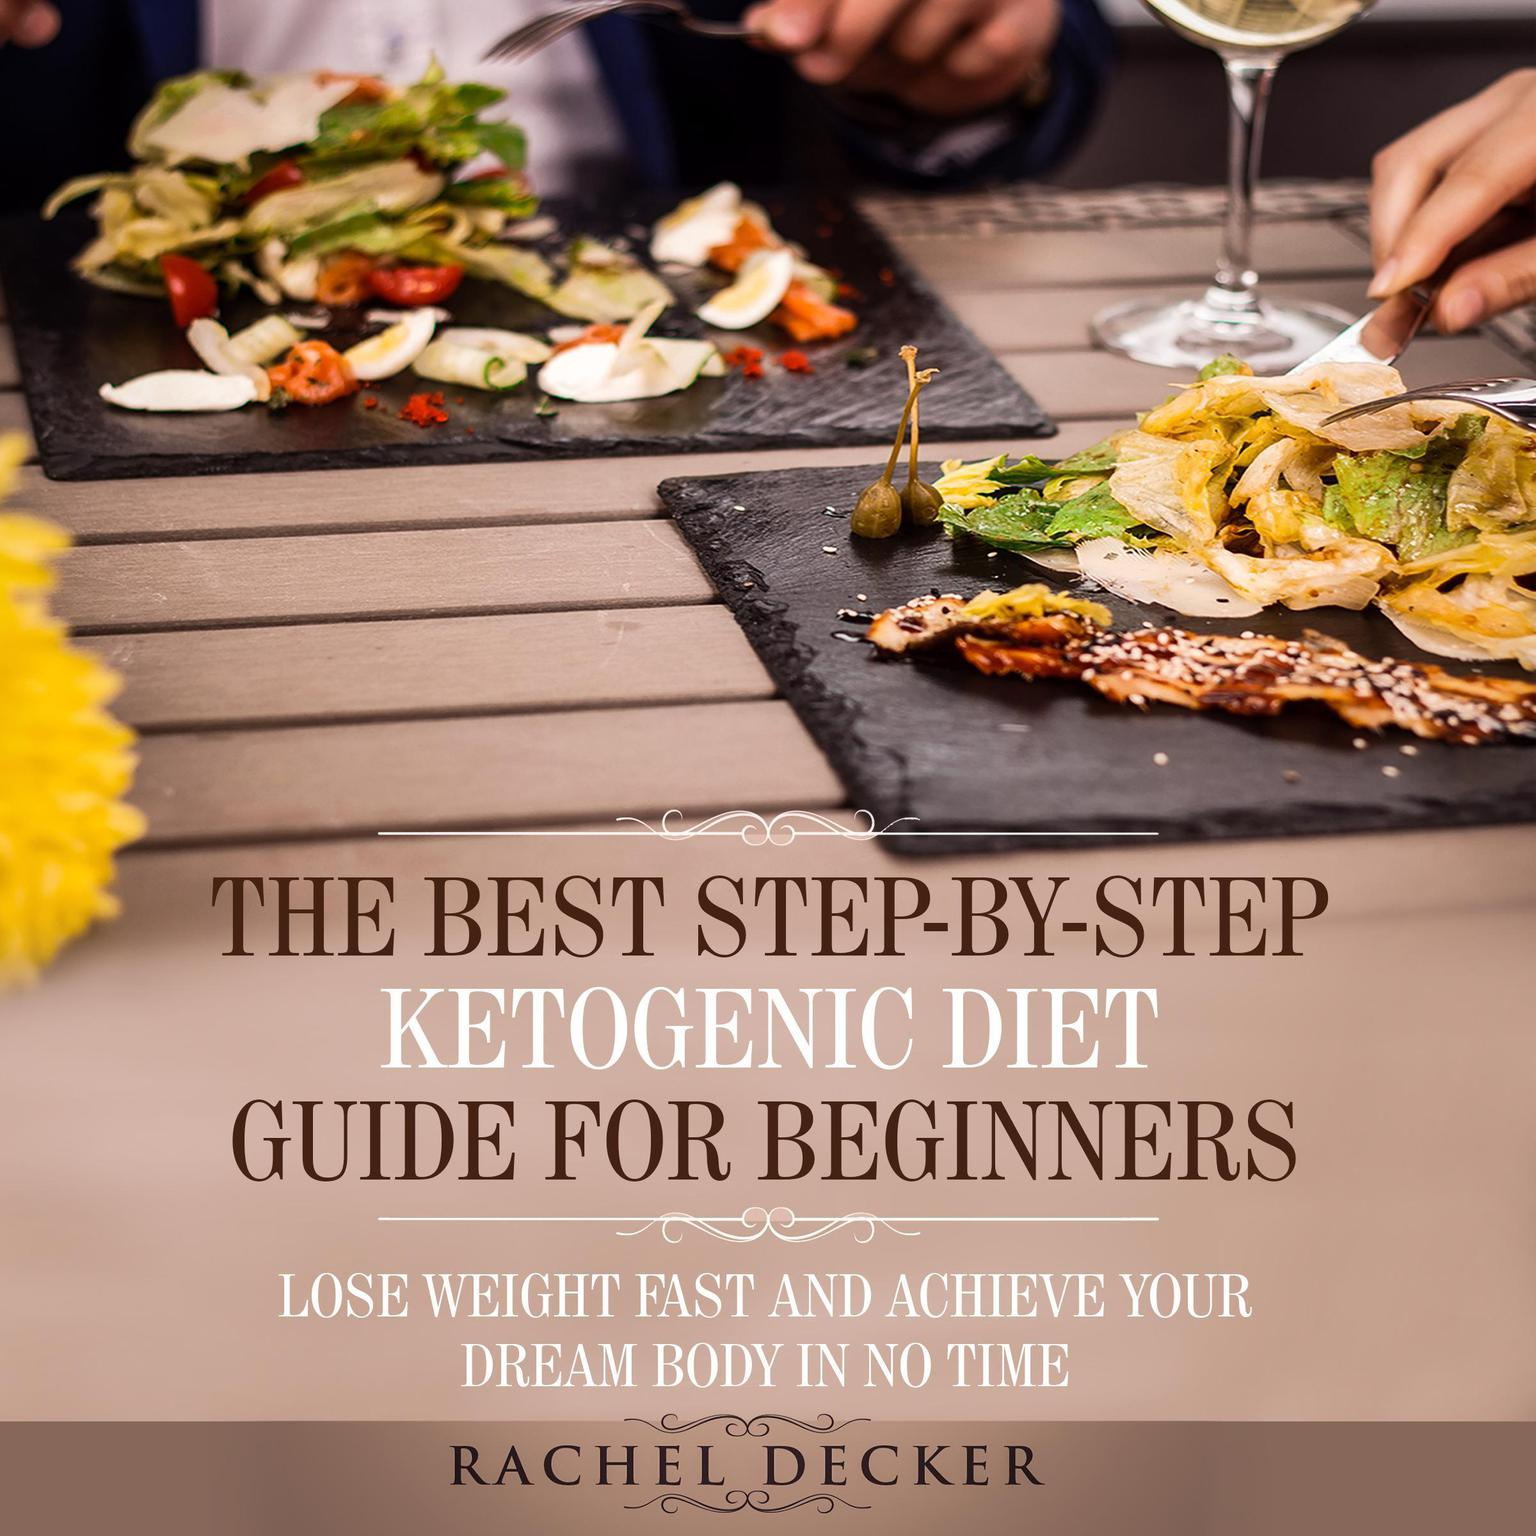 The Best Step-by-Step Ketogenic Diet Guide for Beginners: Lose Weight Fast and Achieve Your Dream Body in No Time Audiobook, by Rachel Decker